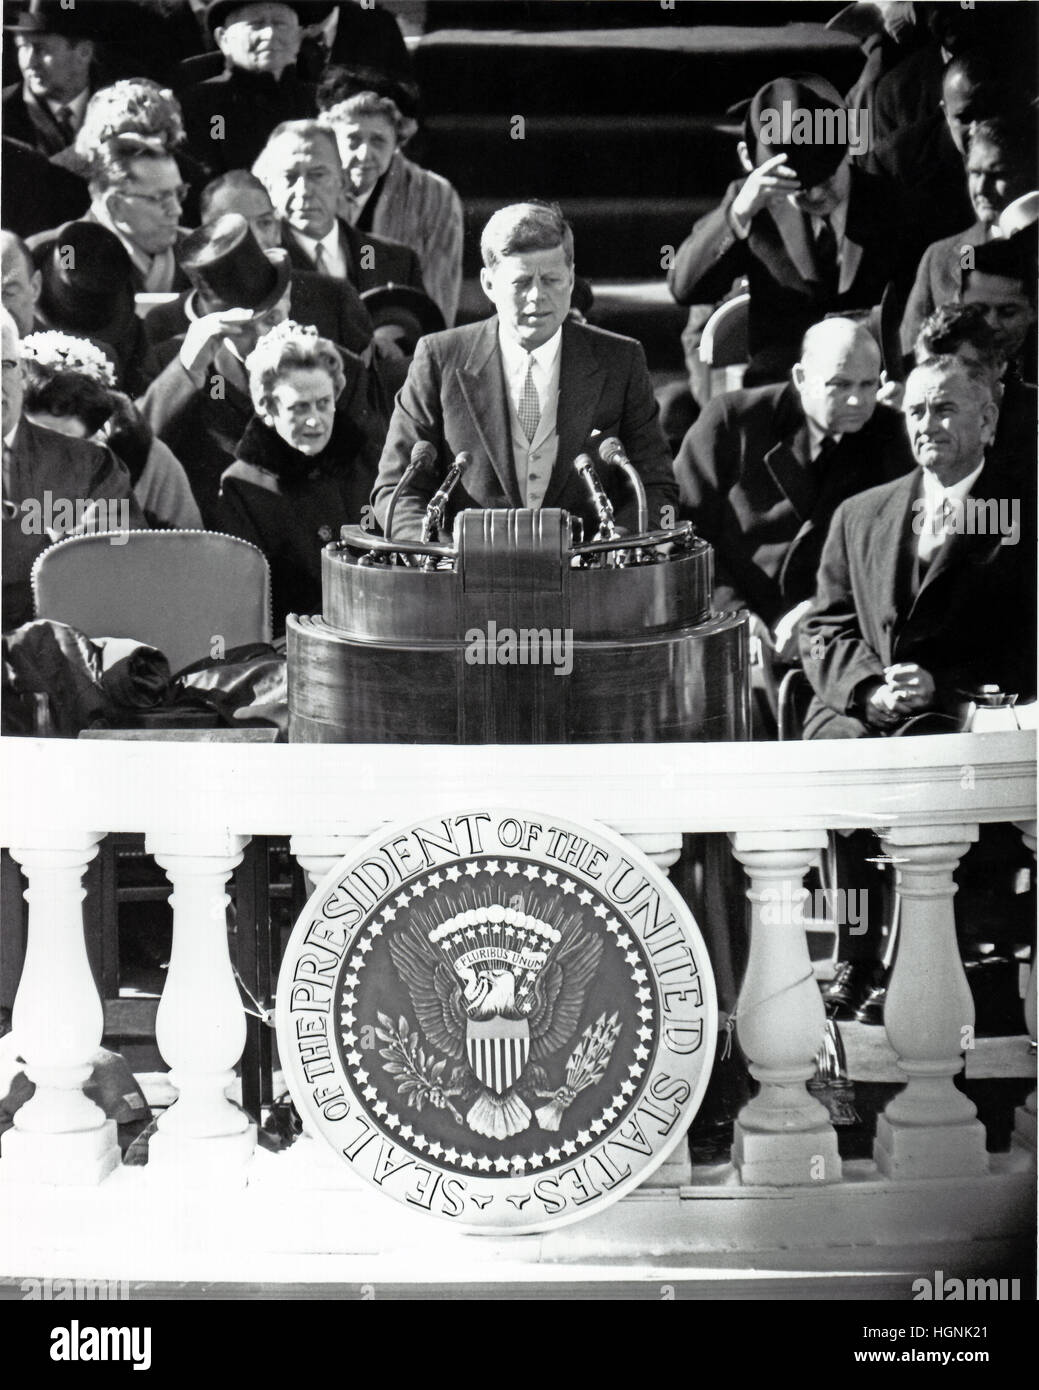 John Kennedy Inauguration High Resolution Stock